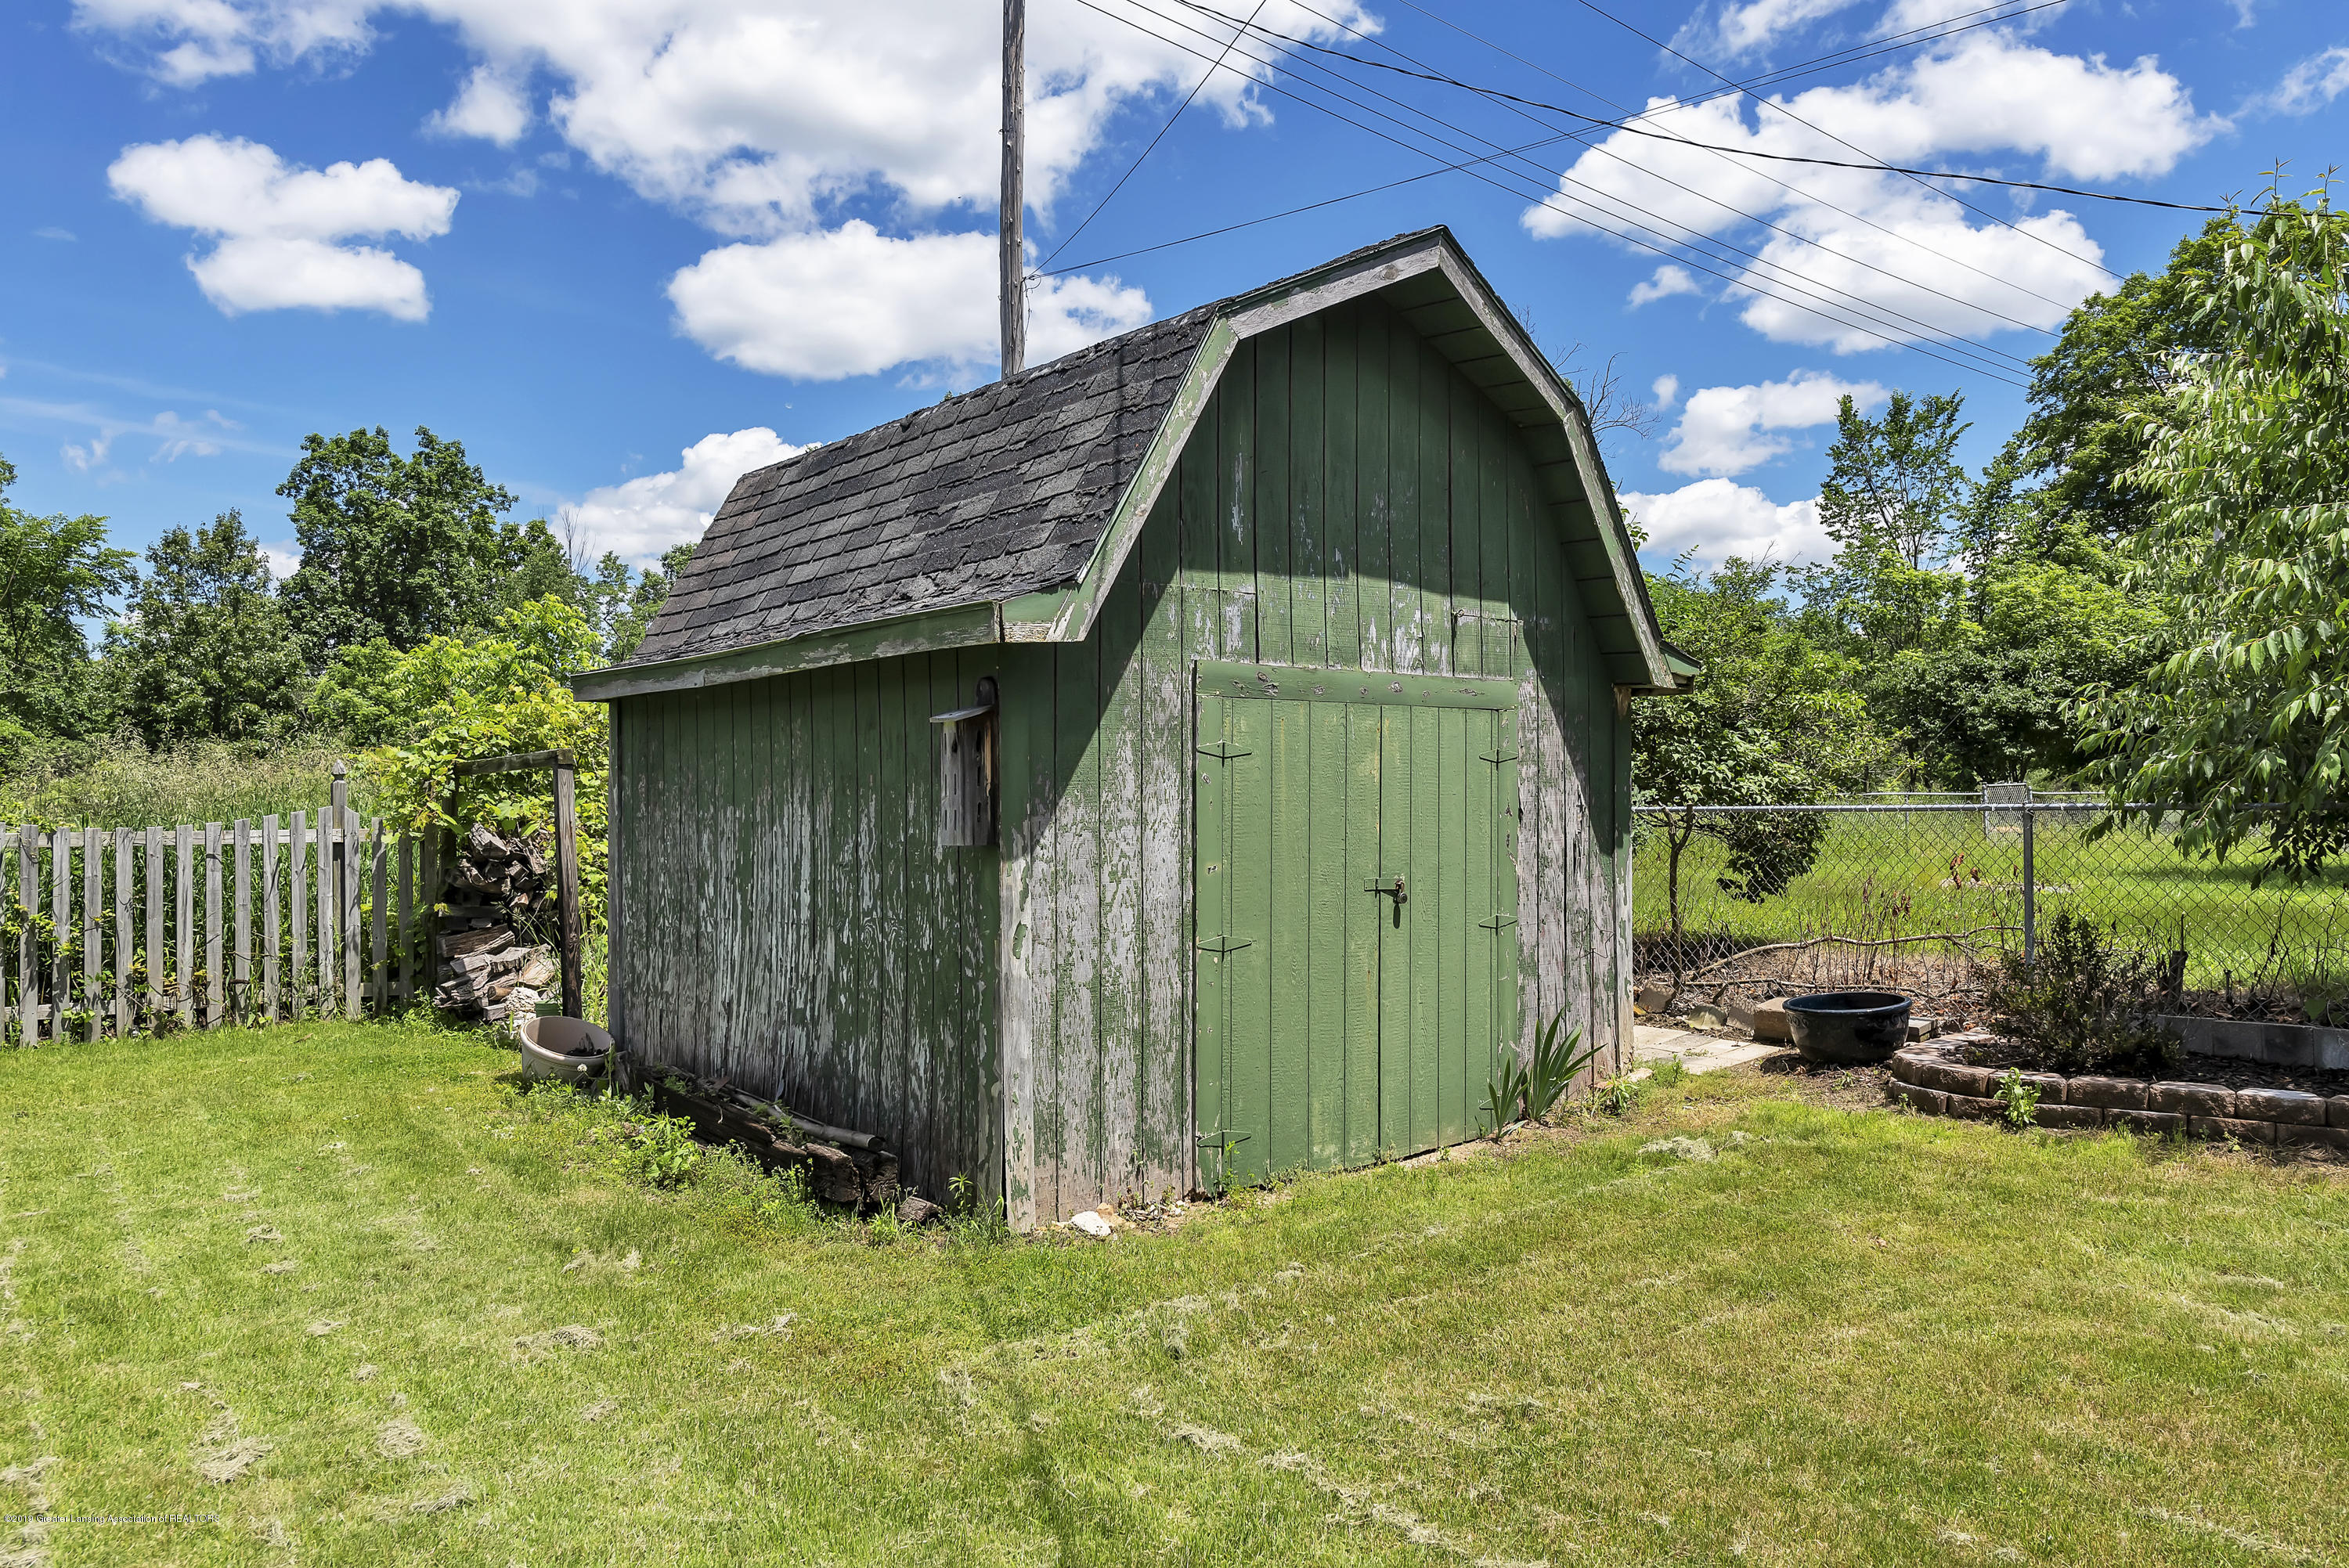 699 Sherwood Rd - 699-E-Sherwood-Rd-Williamston-windowstil - 33